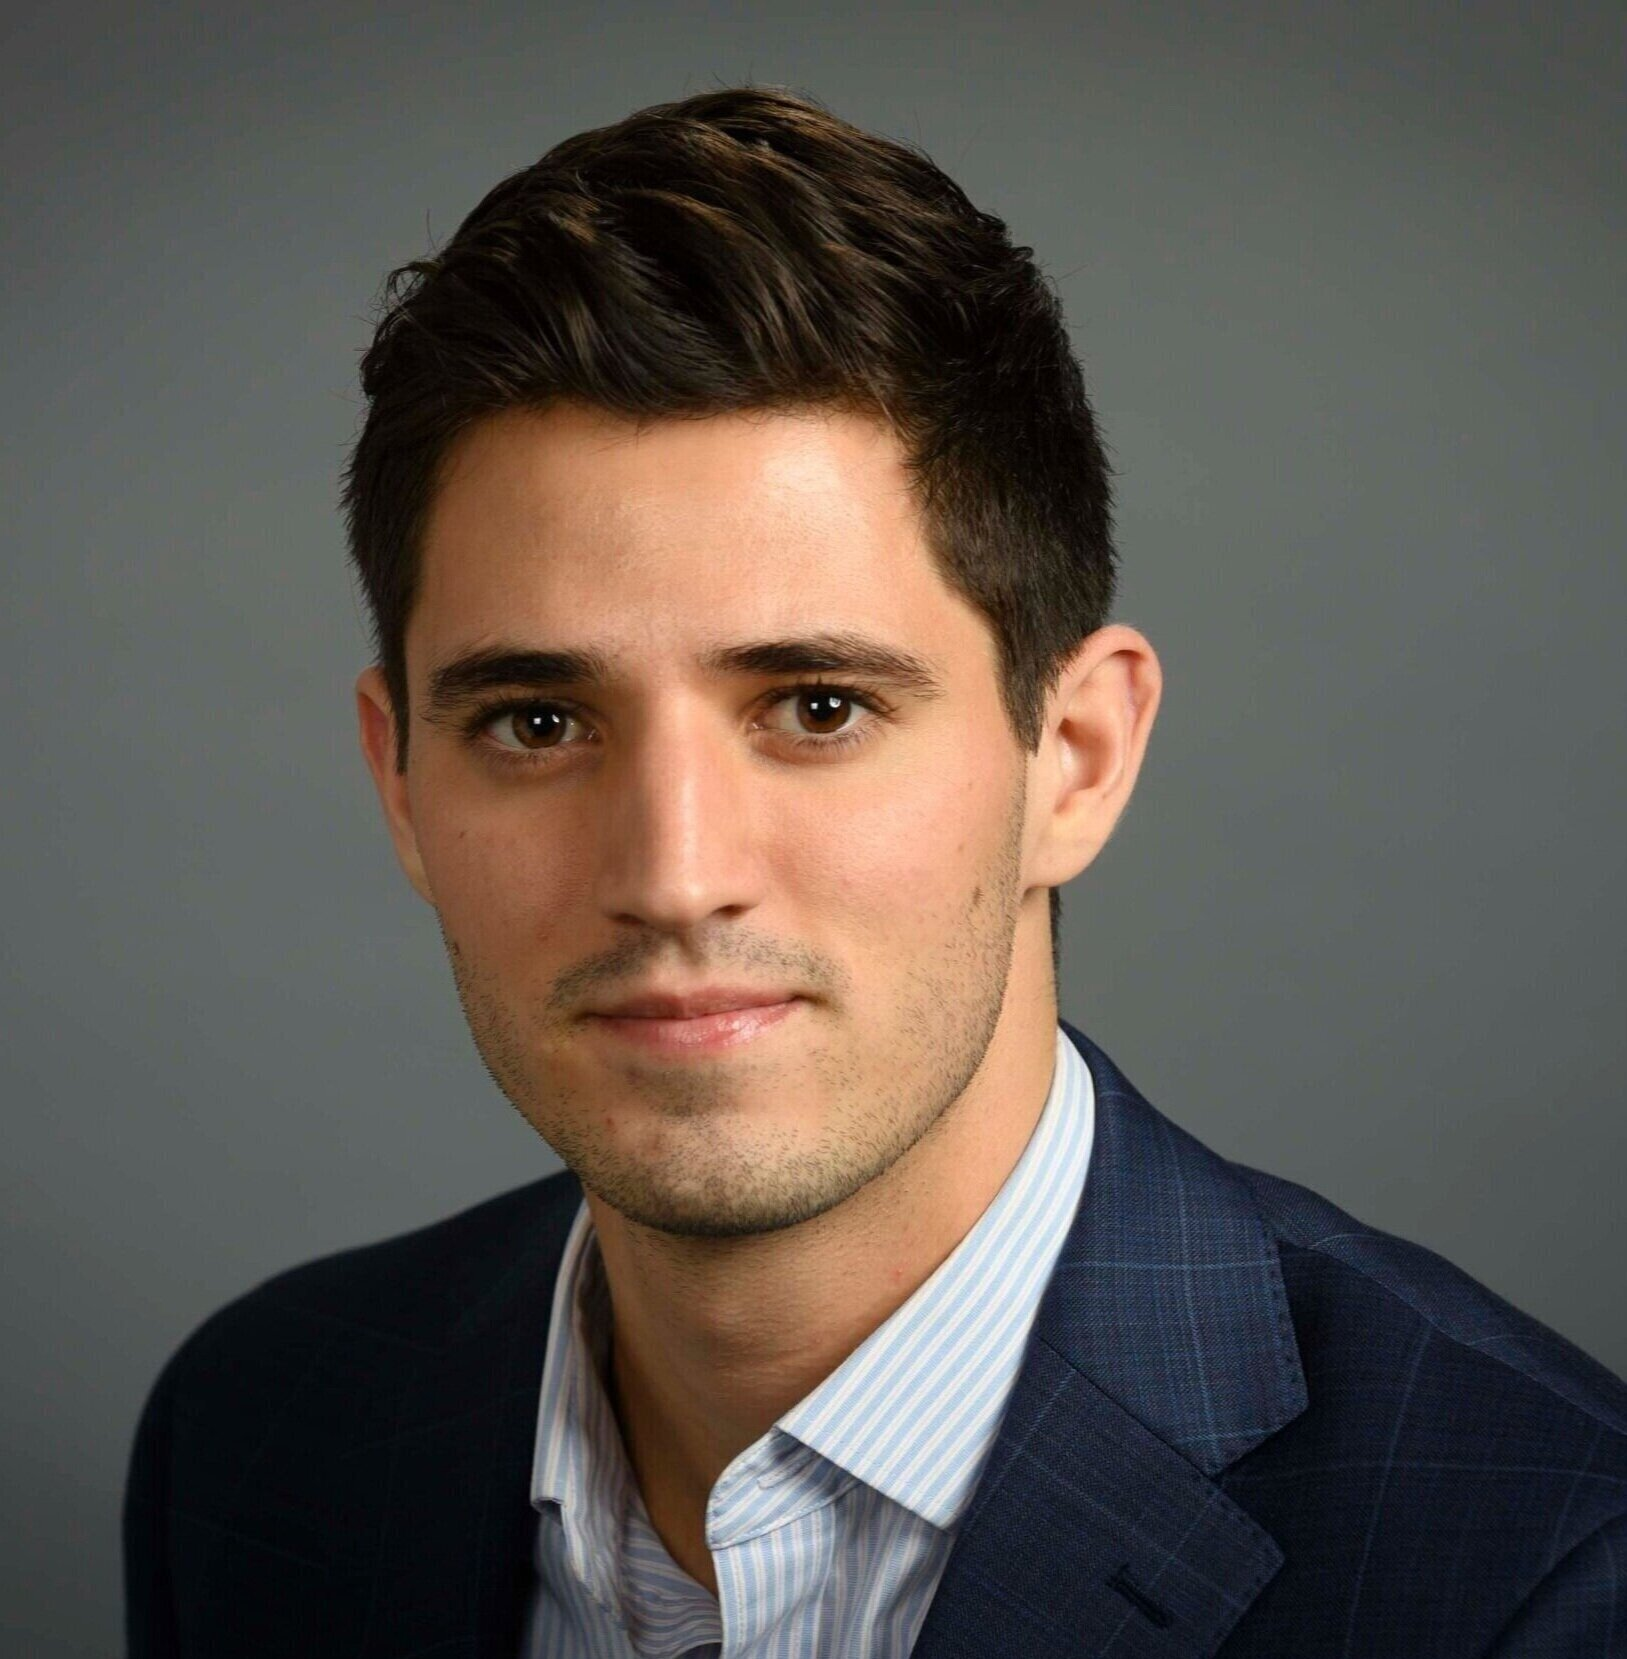 Spencer Haik, Analyst   Spencer is an Analyst at Bullet Point Network. Prior to joining BPN, Spencer was a senior associate on the Hedge Fund team at Magellan Research Group; an expert network provider located in lower Manhattan. In this role, he helped to build and manage a large portion of their short-seller client relationships. Additionally, he helped to conduct diligence and research on projects sent in from clients across their book of business. Prior to joining Magellan, Spencer interned at Empire State Realty Trust in their accounting department where he helped them to streamline processes and mitigate risks across the different arms of the department. Spencer received a B.A. in Economics with a side concentration in Anthropology from Columbia University.